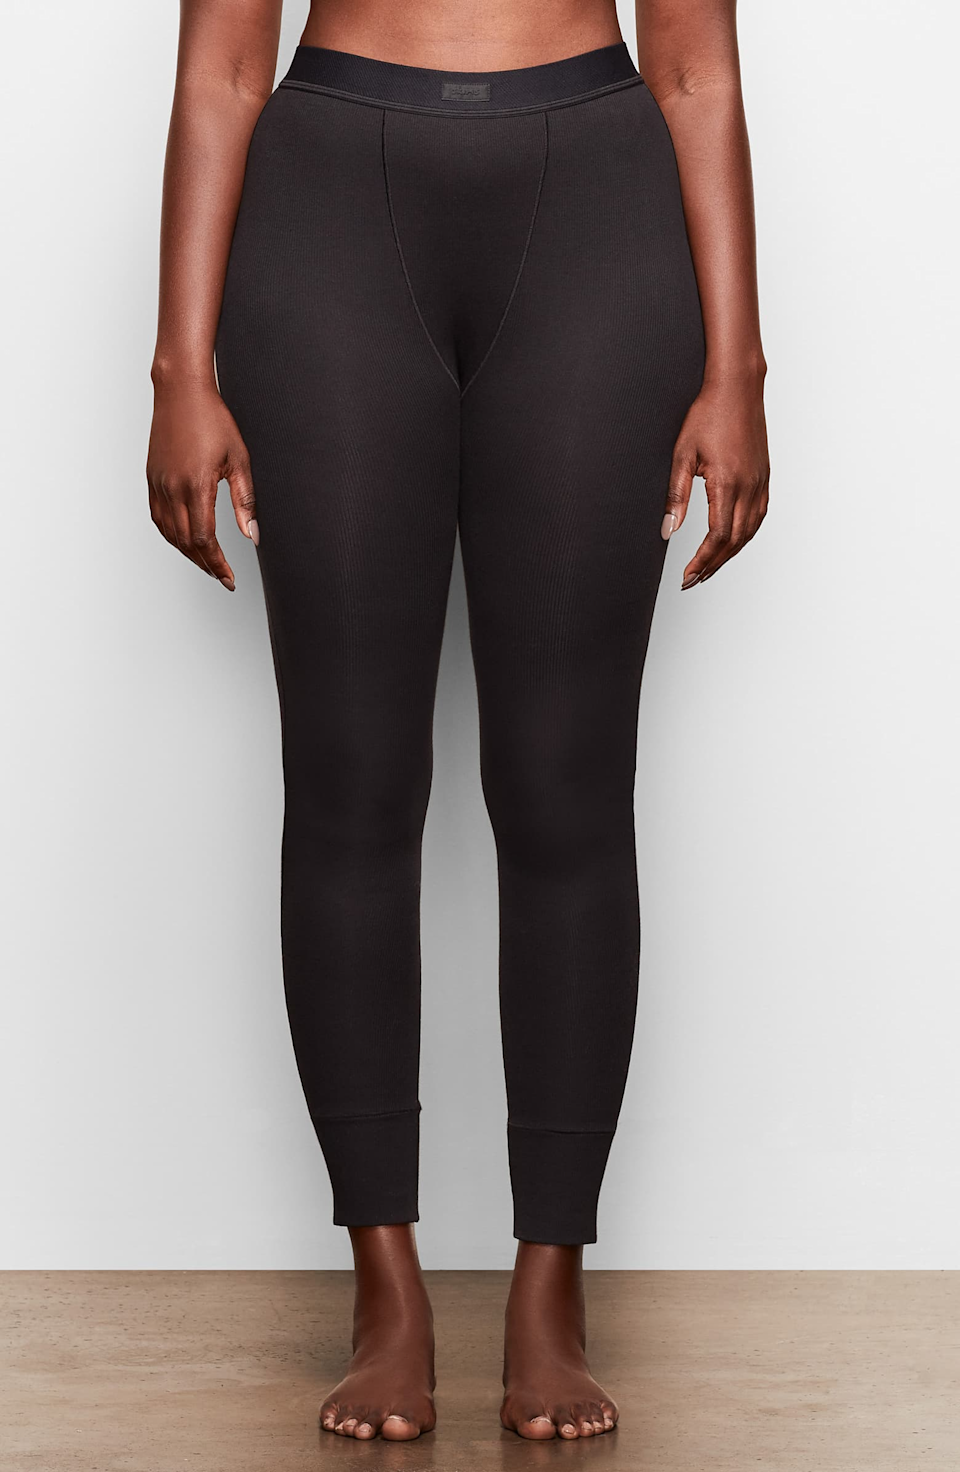 "<h3><a href=""https://www.nordstrom.com/s/skims-cotton-rib-thermal-leggings-regular-plus-size/5547437"" rel=""nofollow noopener"" target=""_blank"" data-ylk=""slk:Skims Cotton Rib Thermal Leggings"" class=""link rapid-noclick-resp"">Skims Cotton Rib Thermal Leggings<br></a></h3><br>Brought to you by the new empress of the loungewear domain herself, these Kim Kardashian West designed and approved thermal leggings hug the body while still allowing the skin to breathe through a ribbed stretch cotton fabric. <br><br><strong>Skims</strong> Cotton Rib Thermal Leggings, $, available at <a href=""https://go.skimresources.com/?id=30283X879131&url=https%3A%2F%2Fshop.nordstrom.com%2Fs%2Fskims-cotton-rib-thermal-leggings-regular-plus-size%2F5547437%2Ffull"" rel=""nofollow noopener"" target=""_blank"" data-ylk=""slk:Nordstrom"" class=""link rapid-noclick-resp"">Nordstrom</a>"